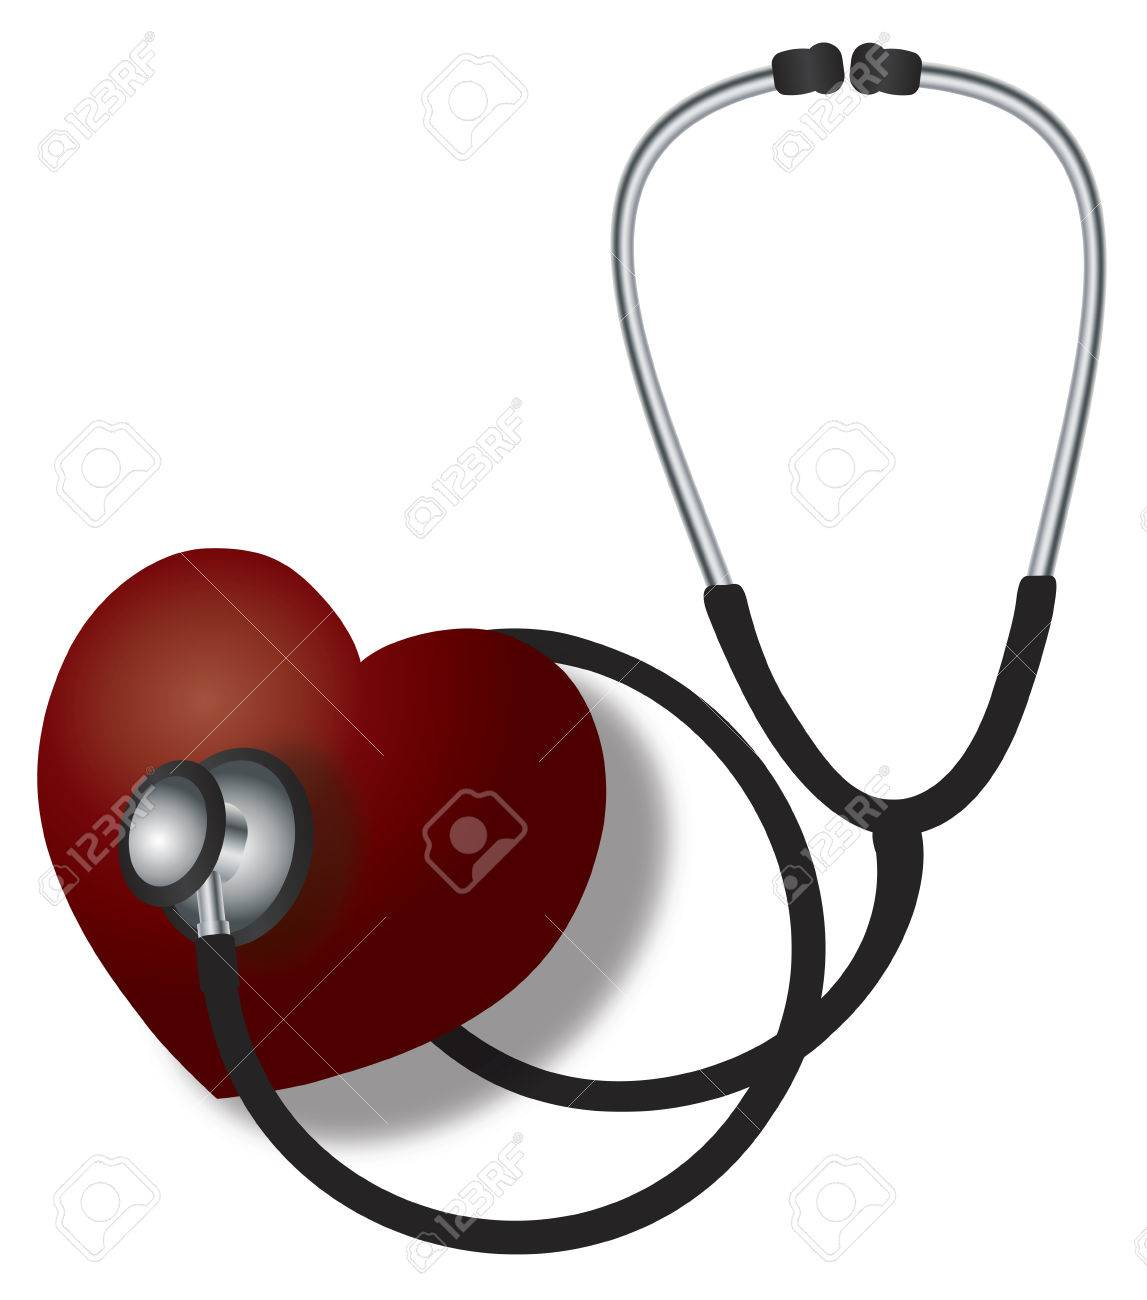 Stethoscope Medical Device Listening to Red Heart Beat on White Background Illustration Stock Vector - 23645154